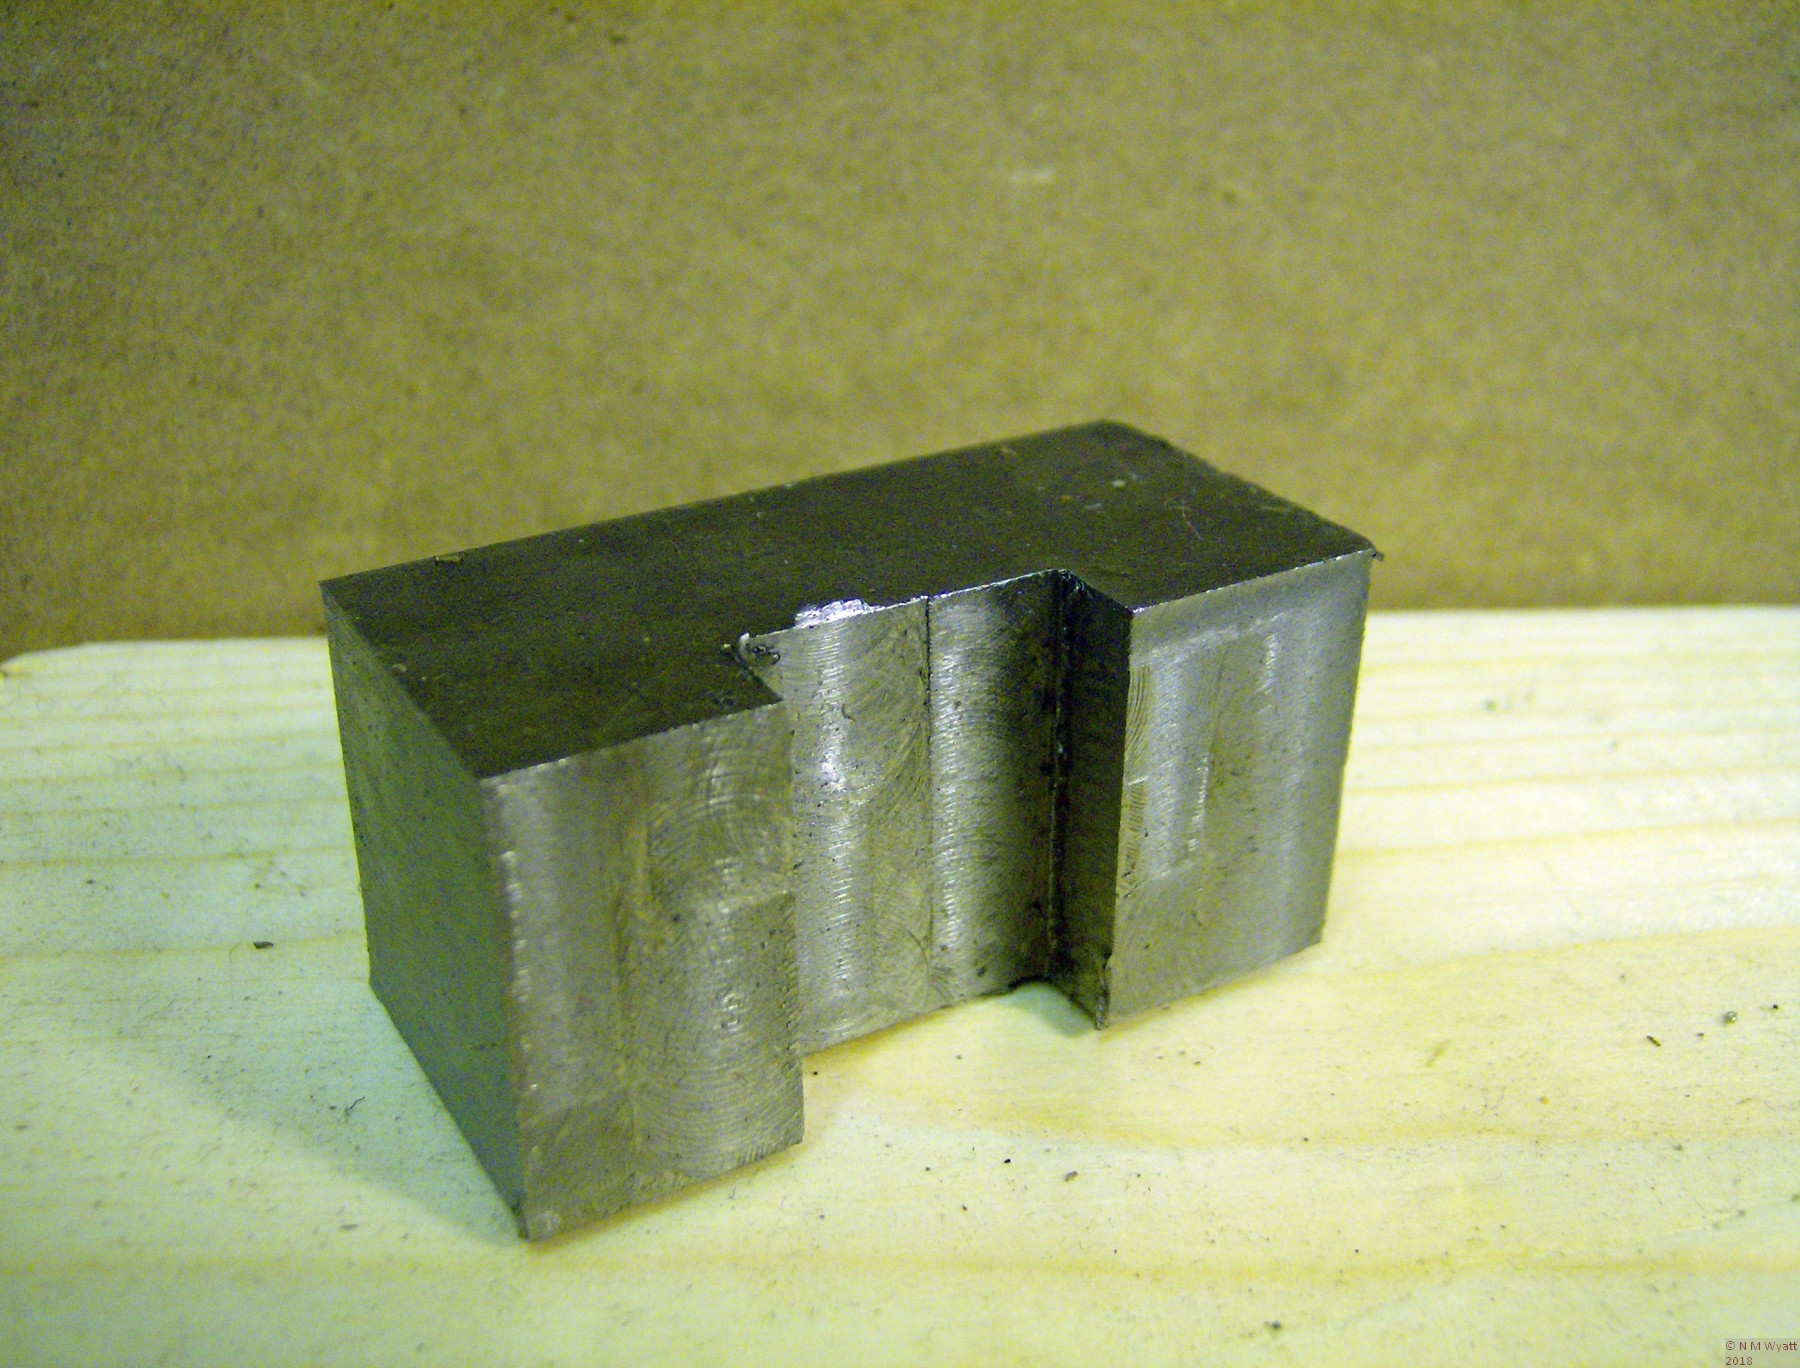 A toolholder blank, with a plain slot